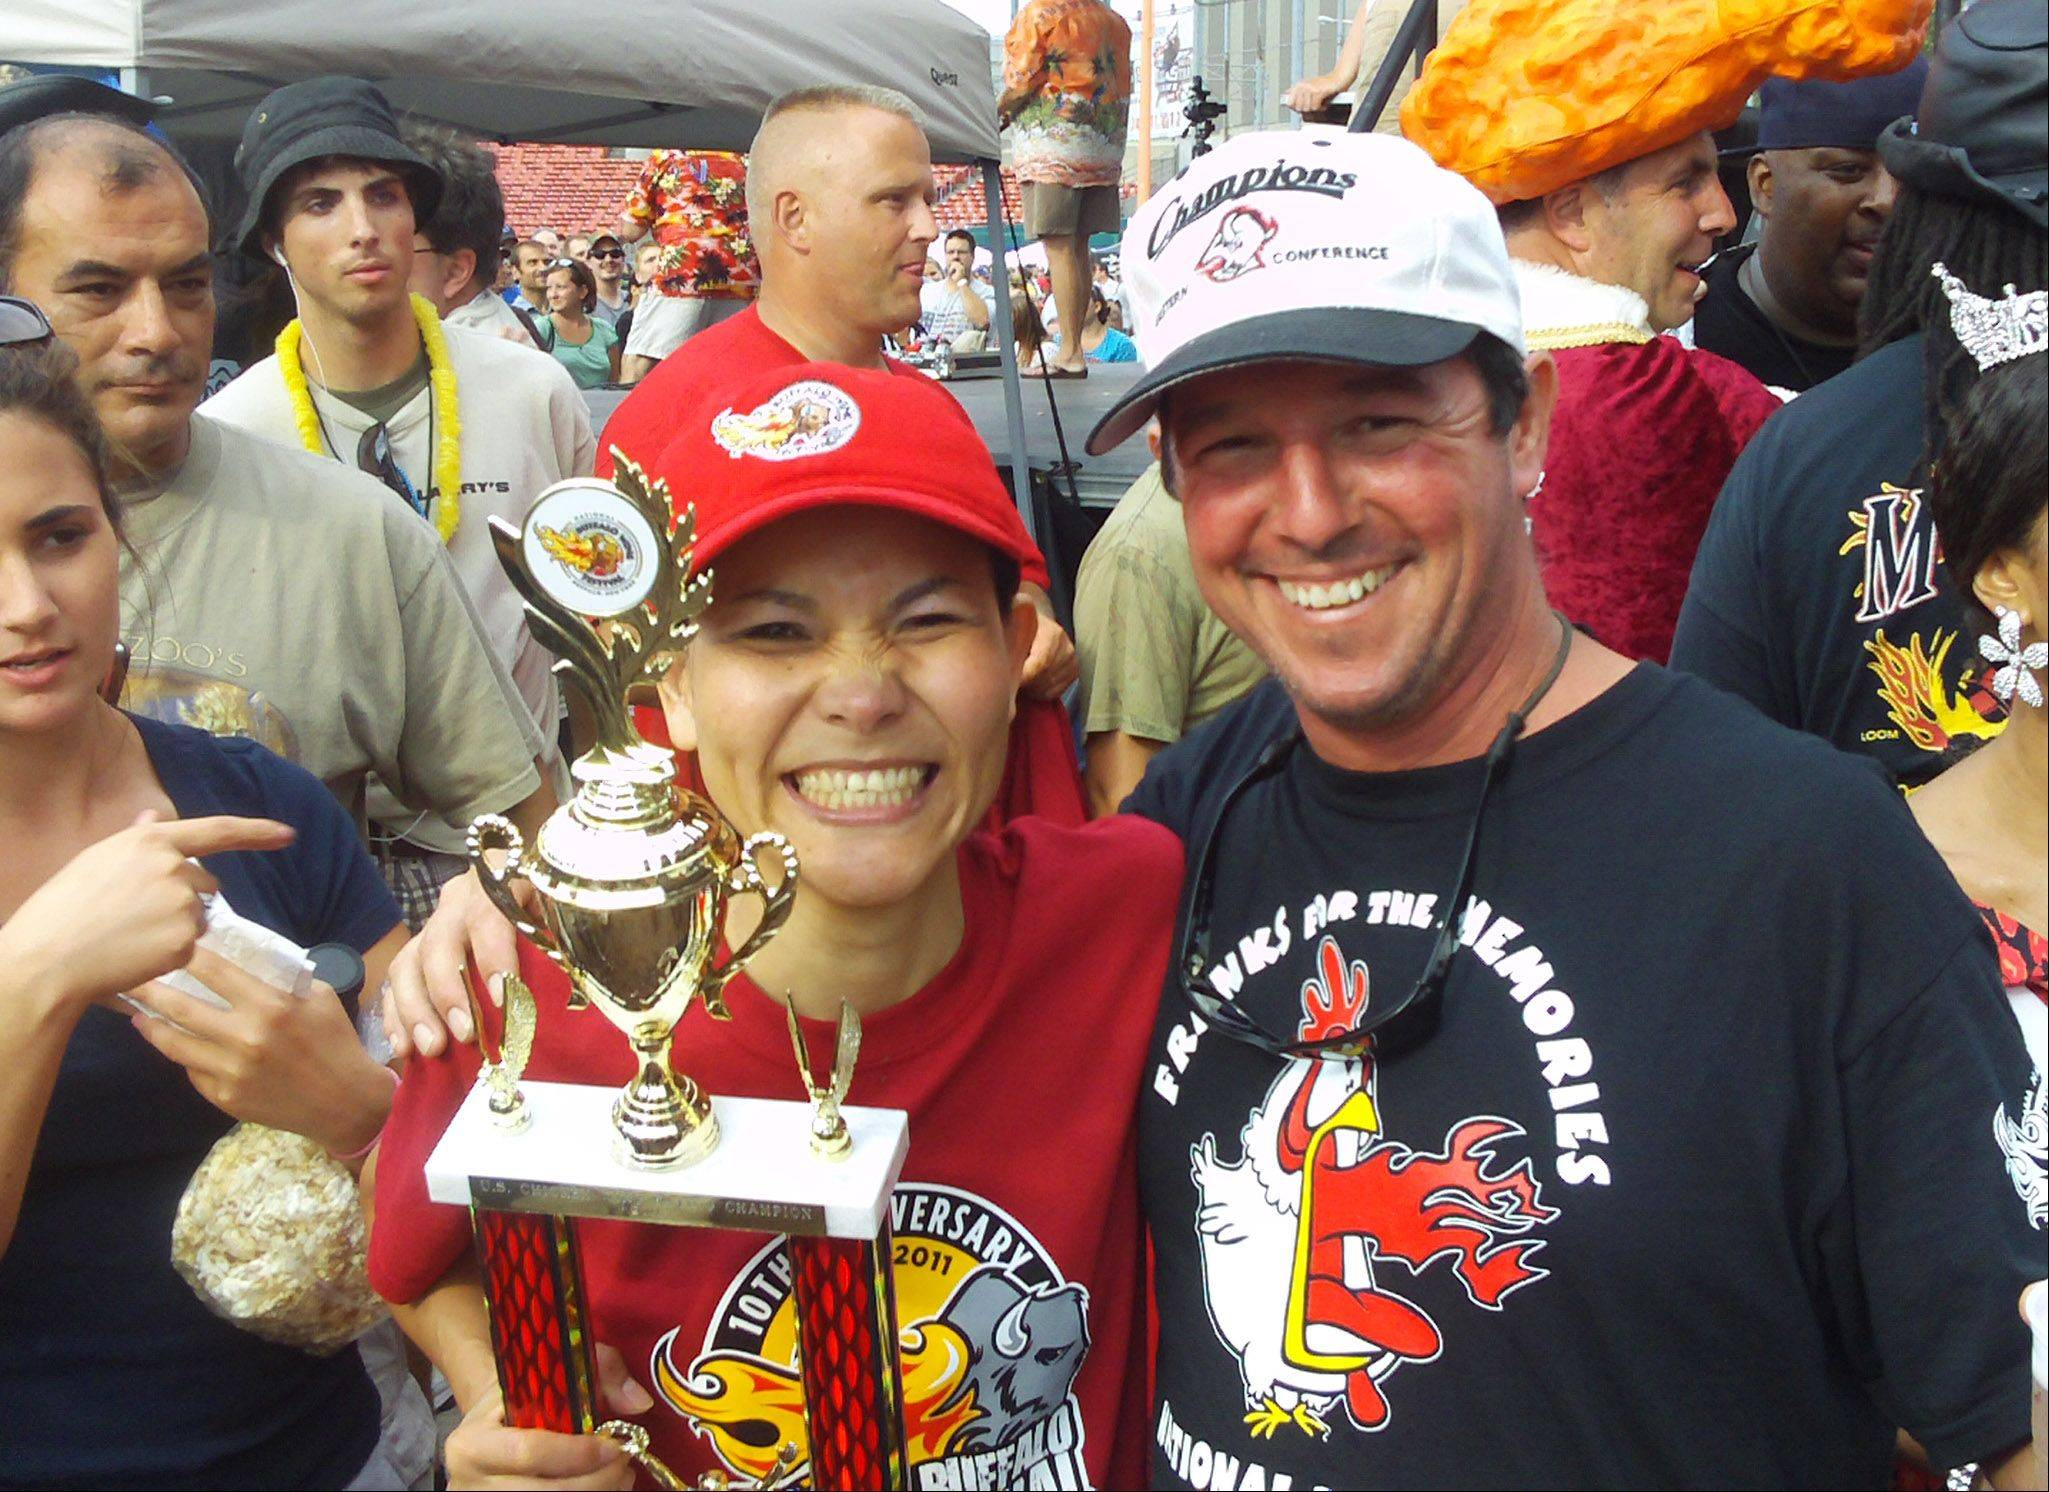 Mundelein eatery wins at national wing festival